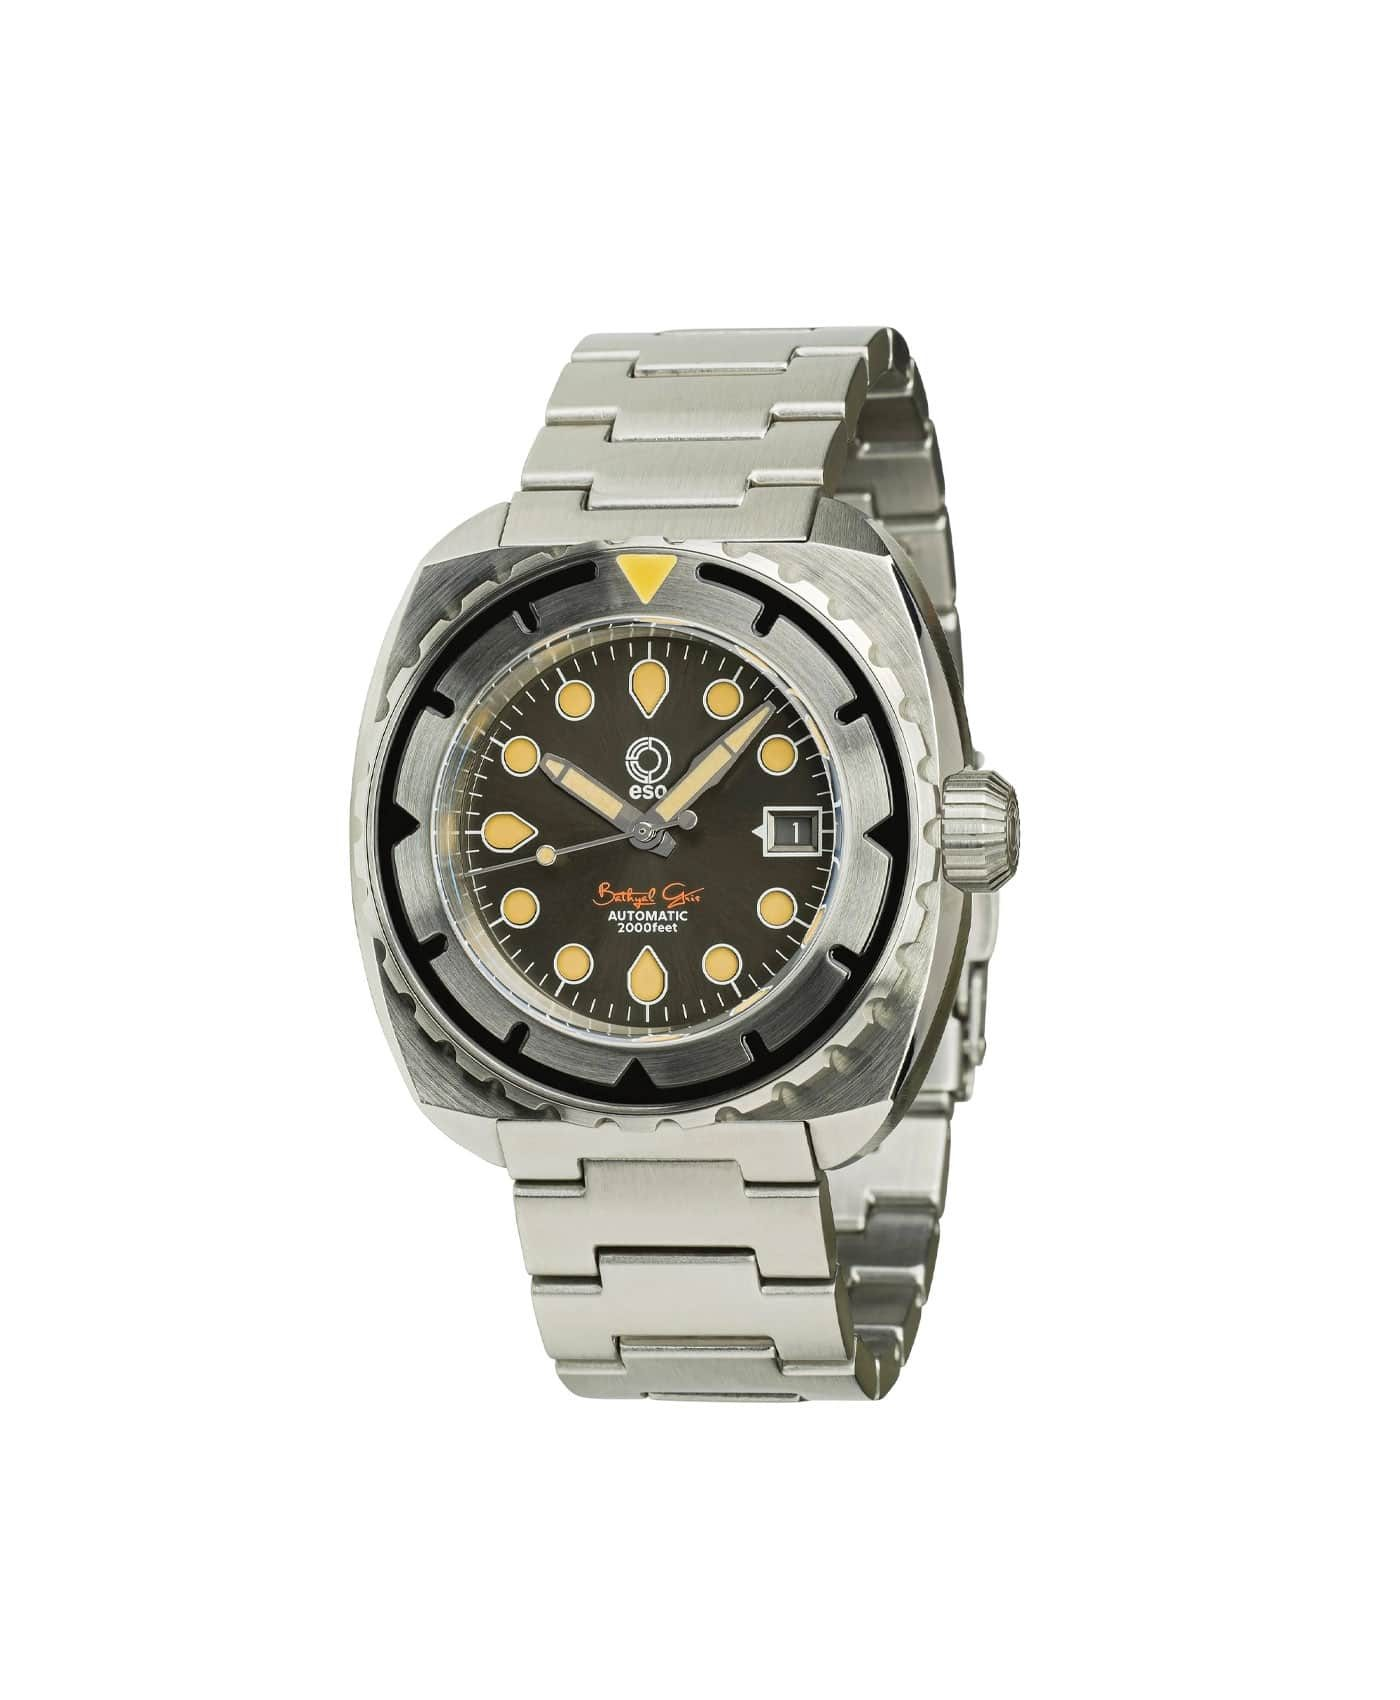 Esoteric-Watches_Bathyal Gris_front